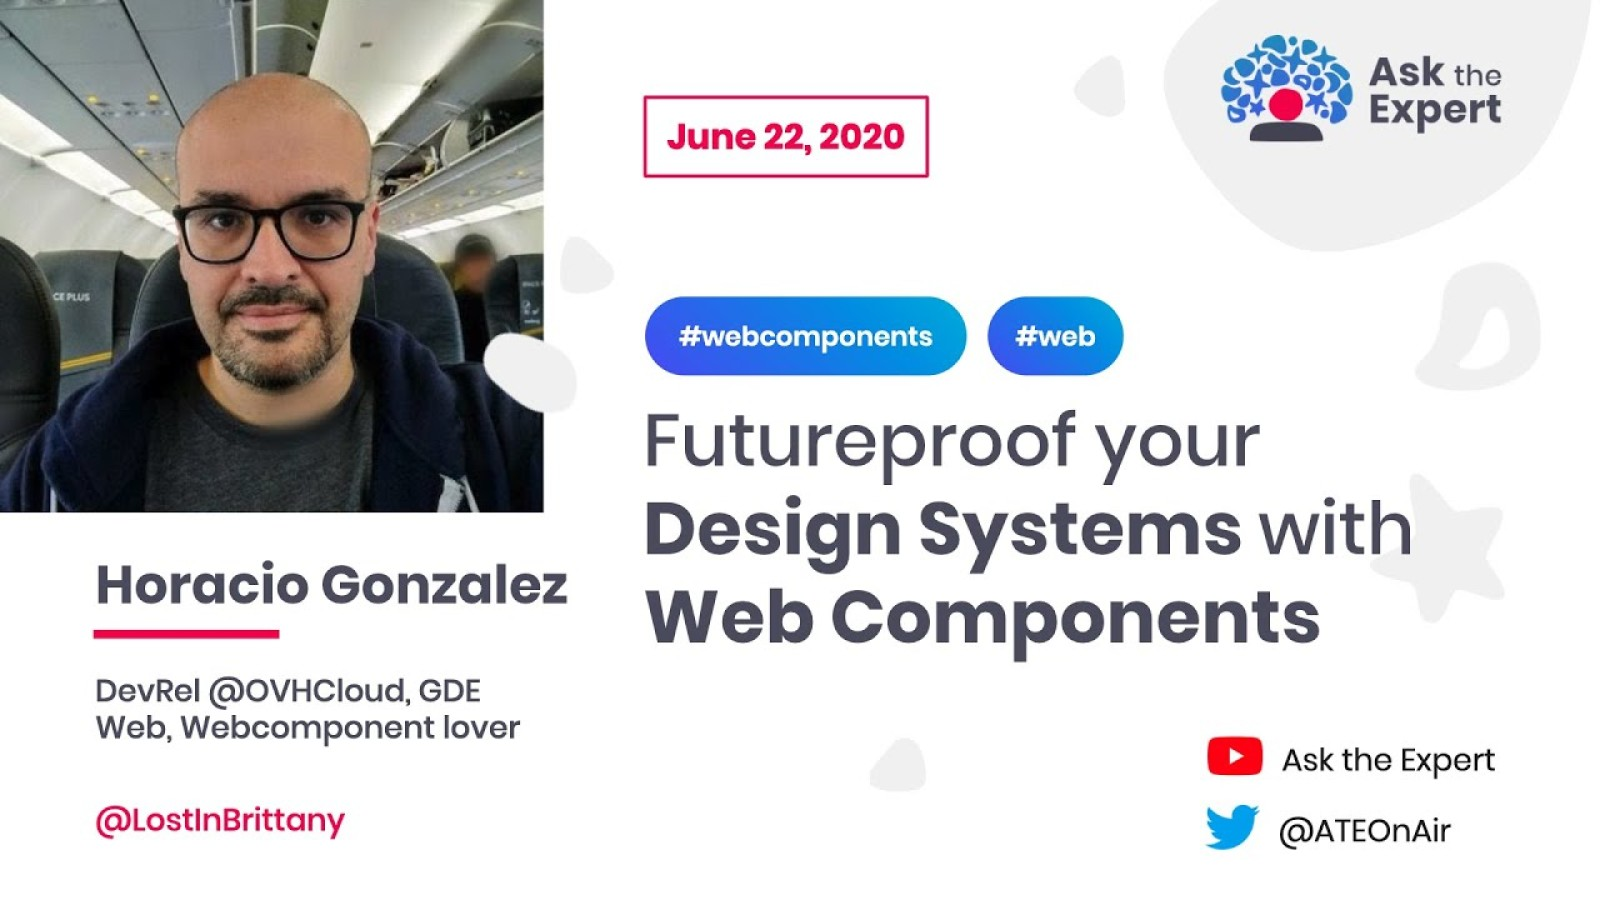 Futureproof your Design Systems with Web Components